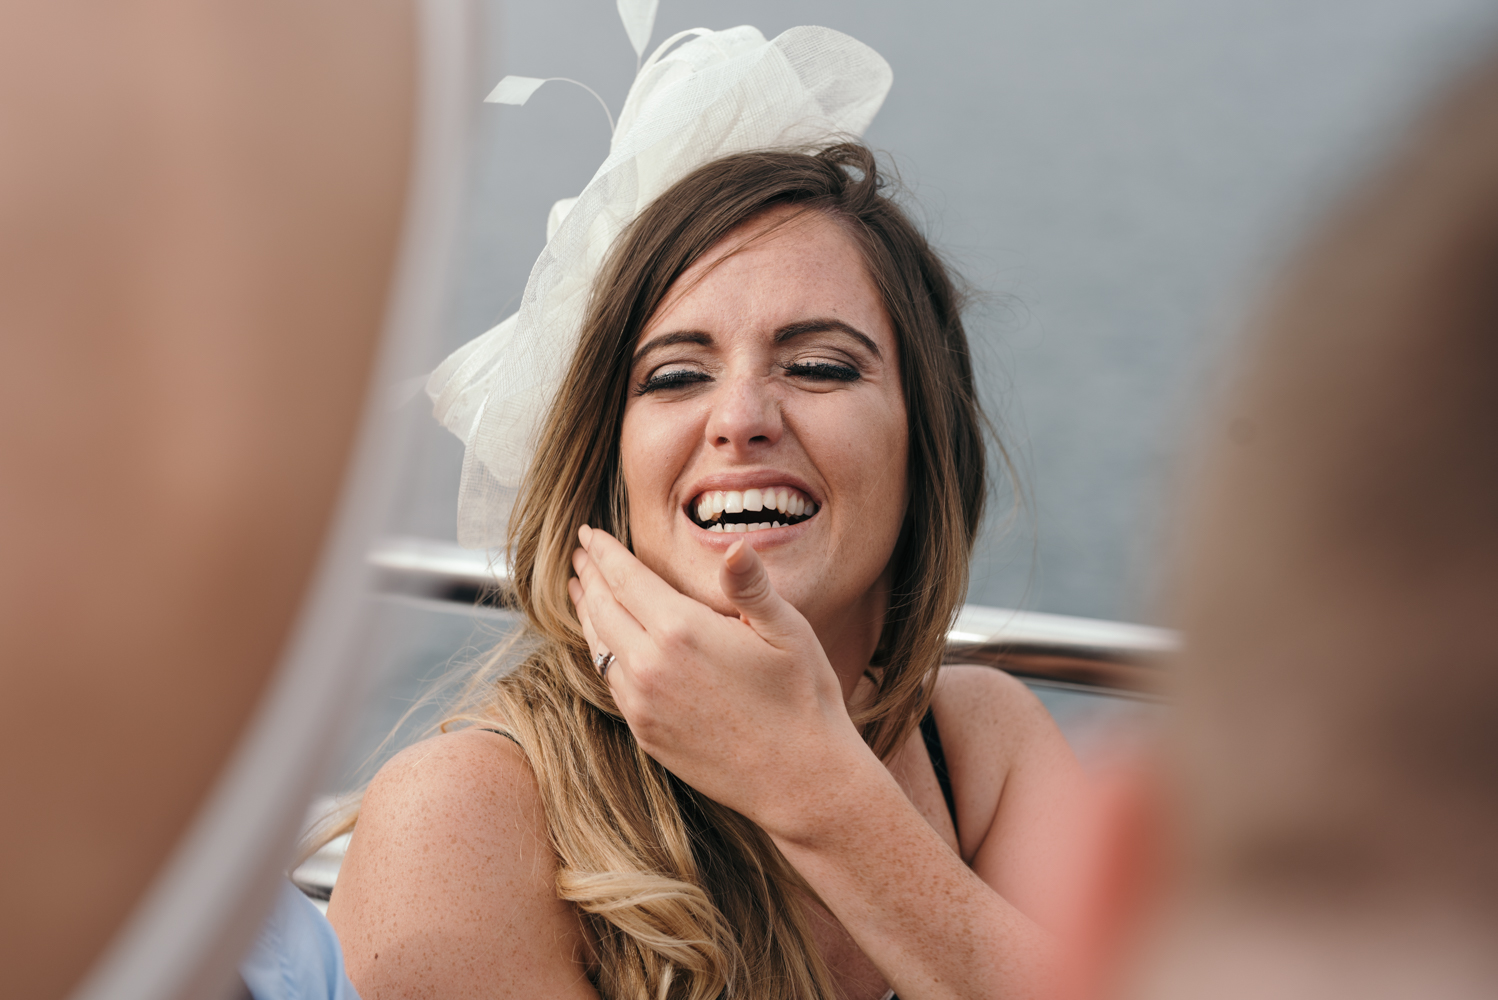 One of the wedding guests goofing around during the lake cruise